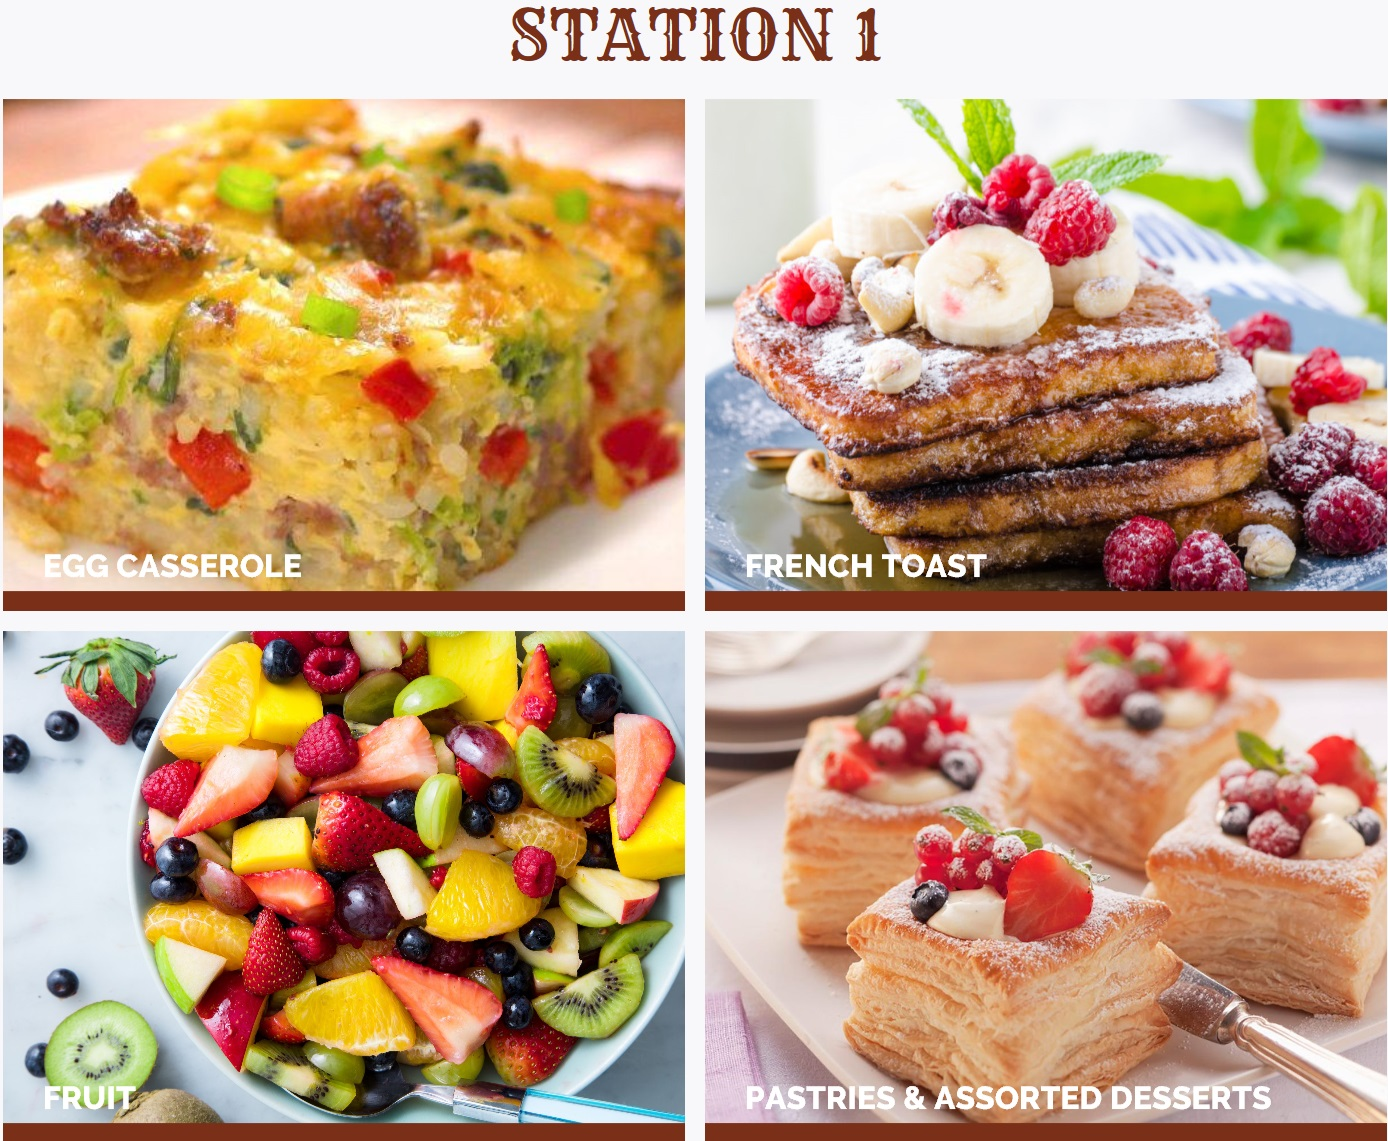 Egg Casserole, French Toast, Fruit & Pastries, Assorted Desserts